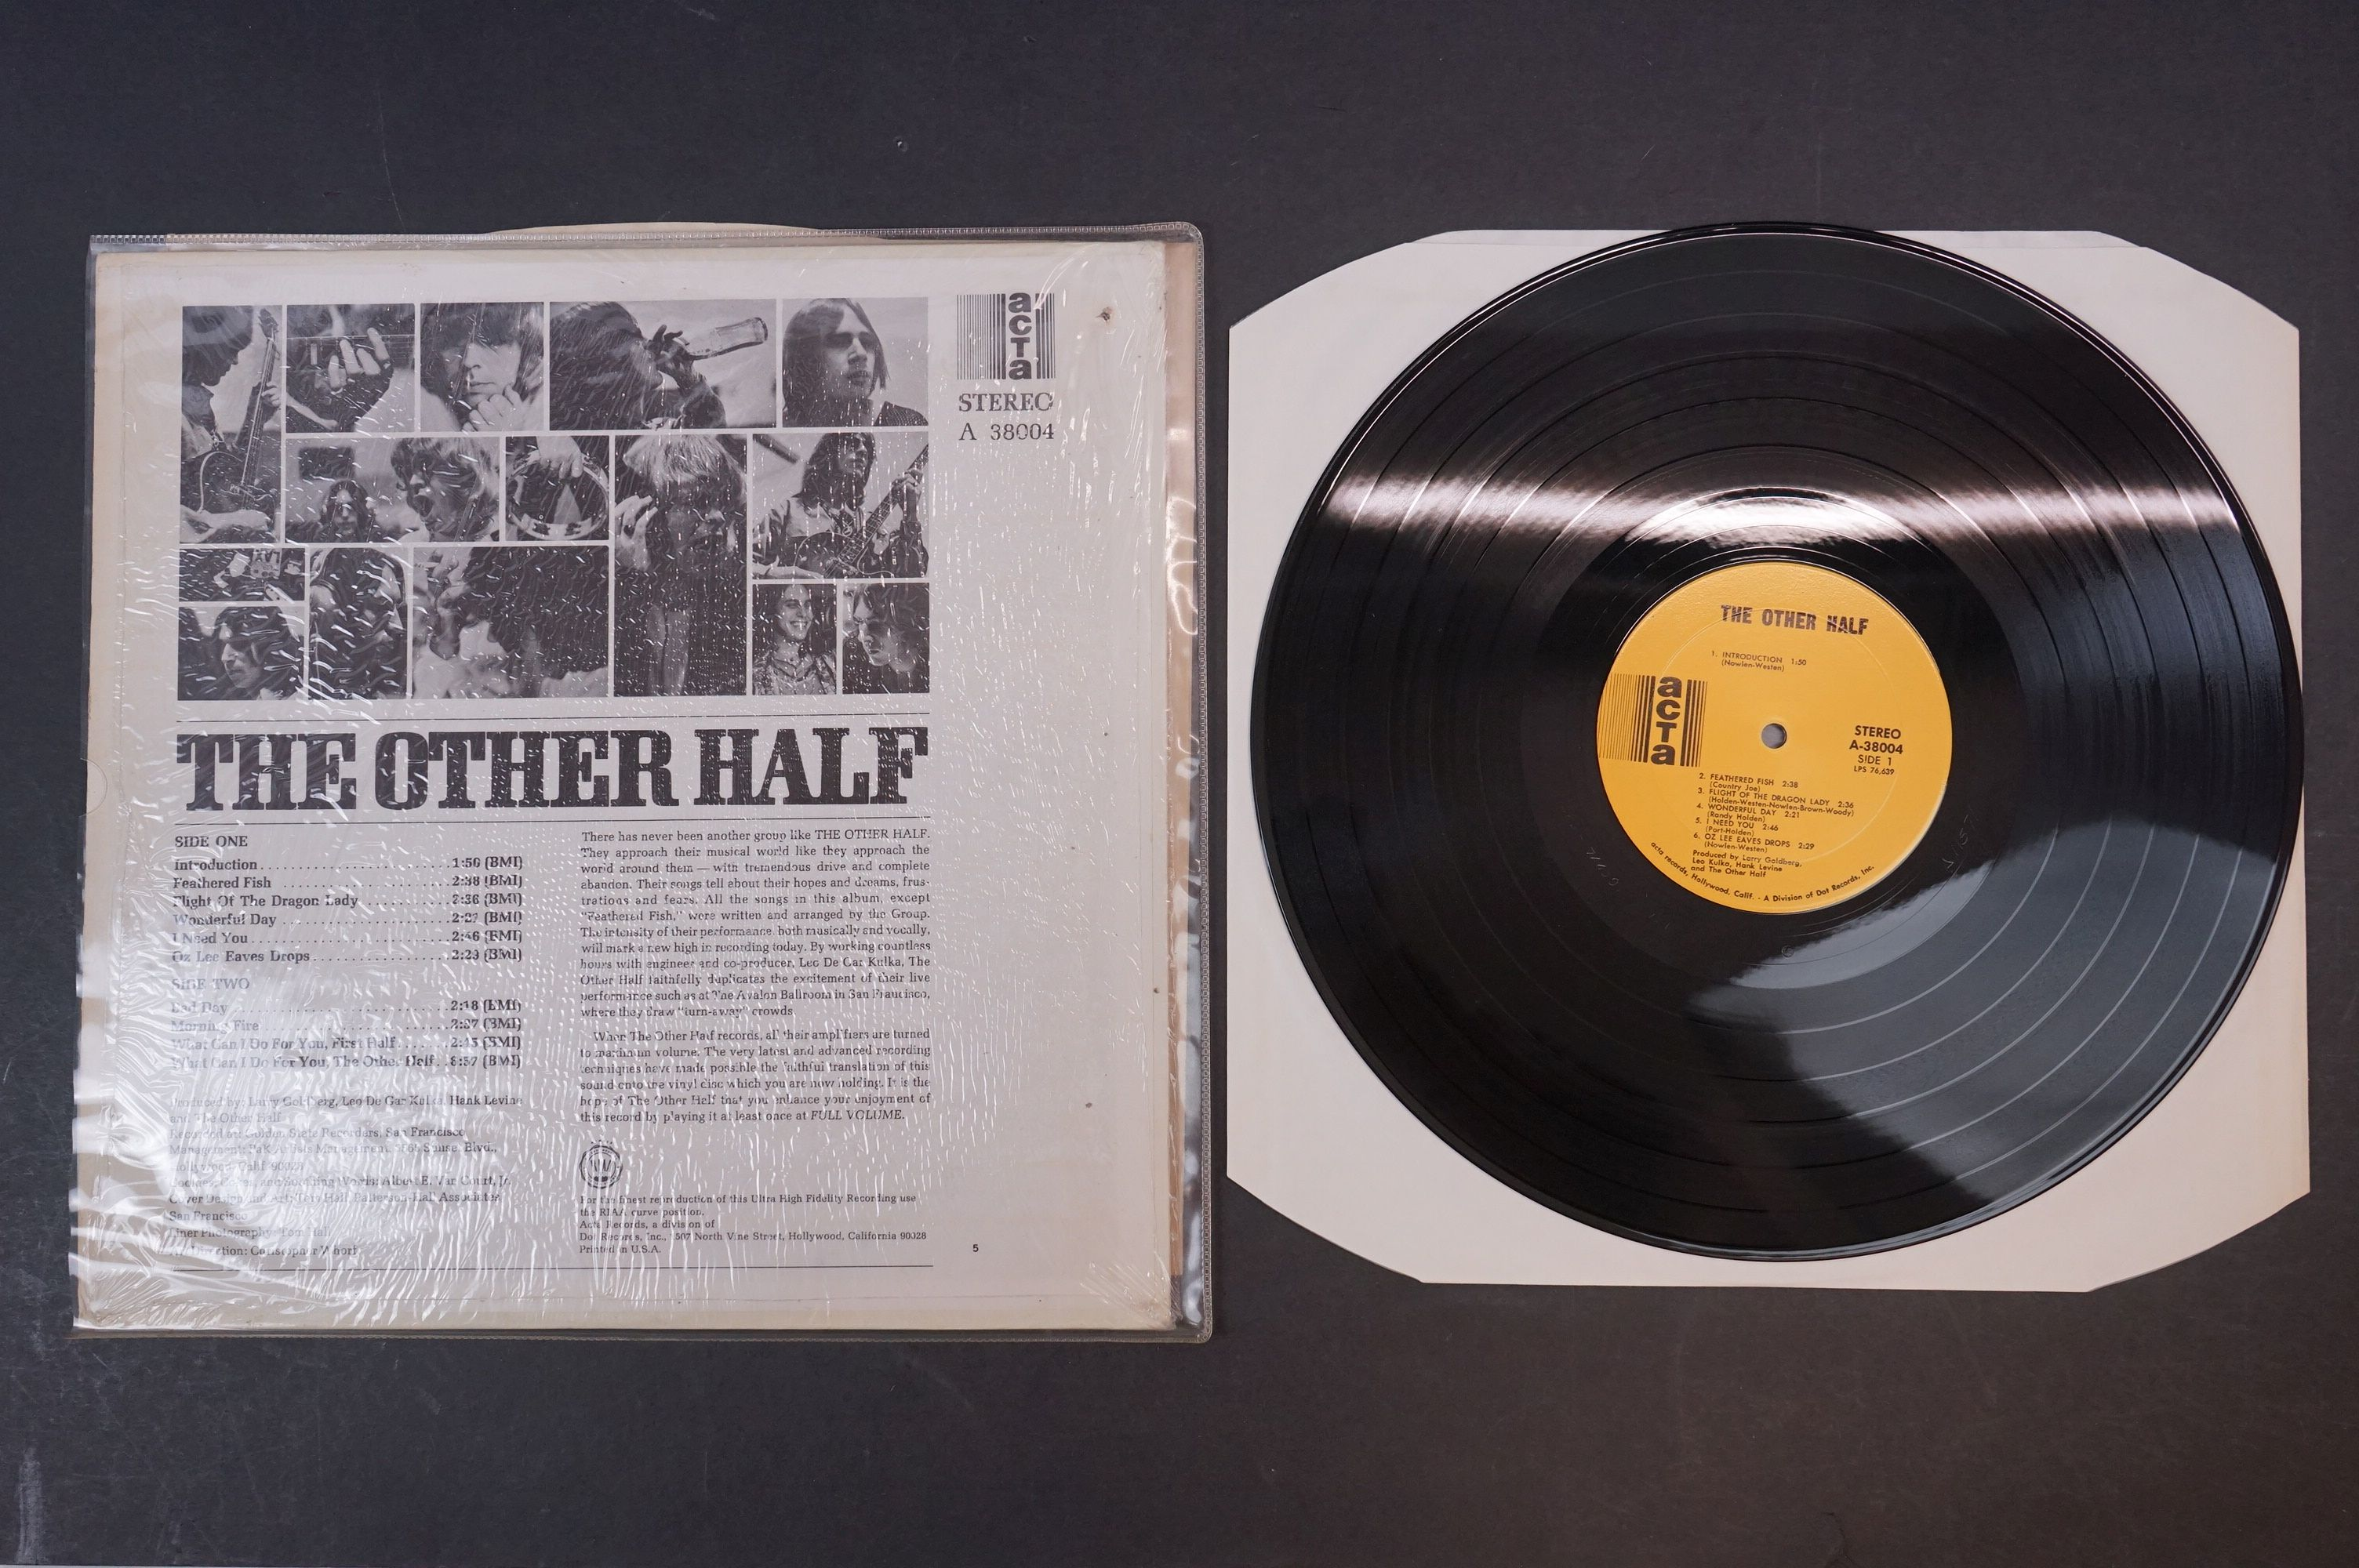 Vinyl - Psych / Garage - The Other Half - The Other Half, 1968 US, Acta Records, Randy Holden?s - Image 3 of 3